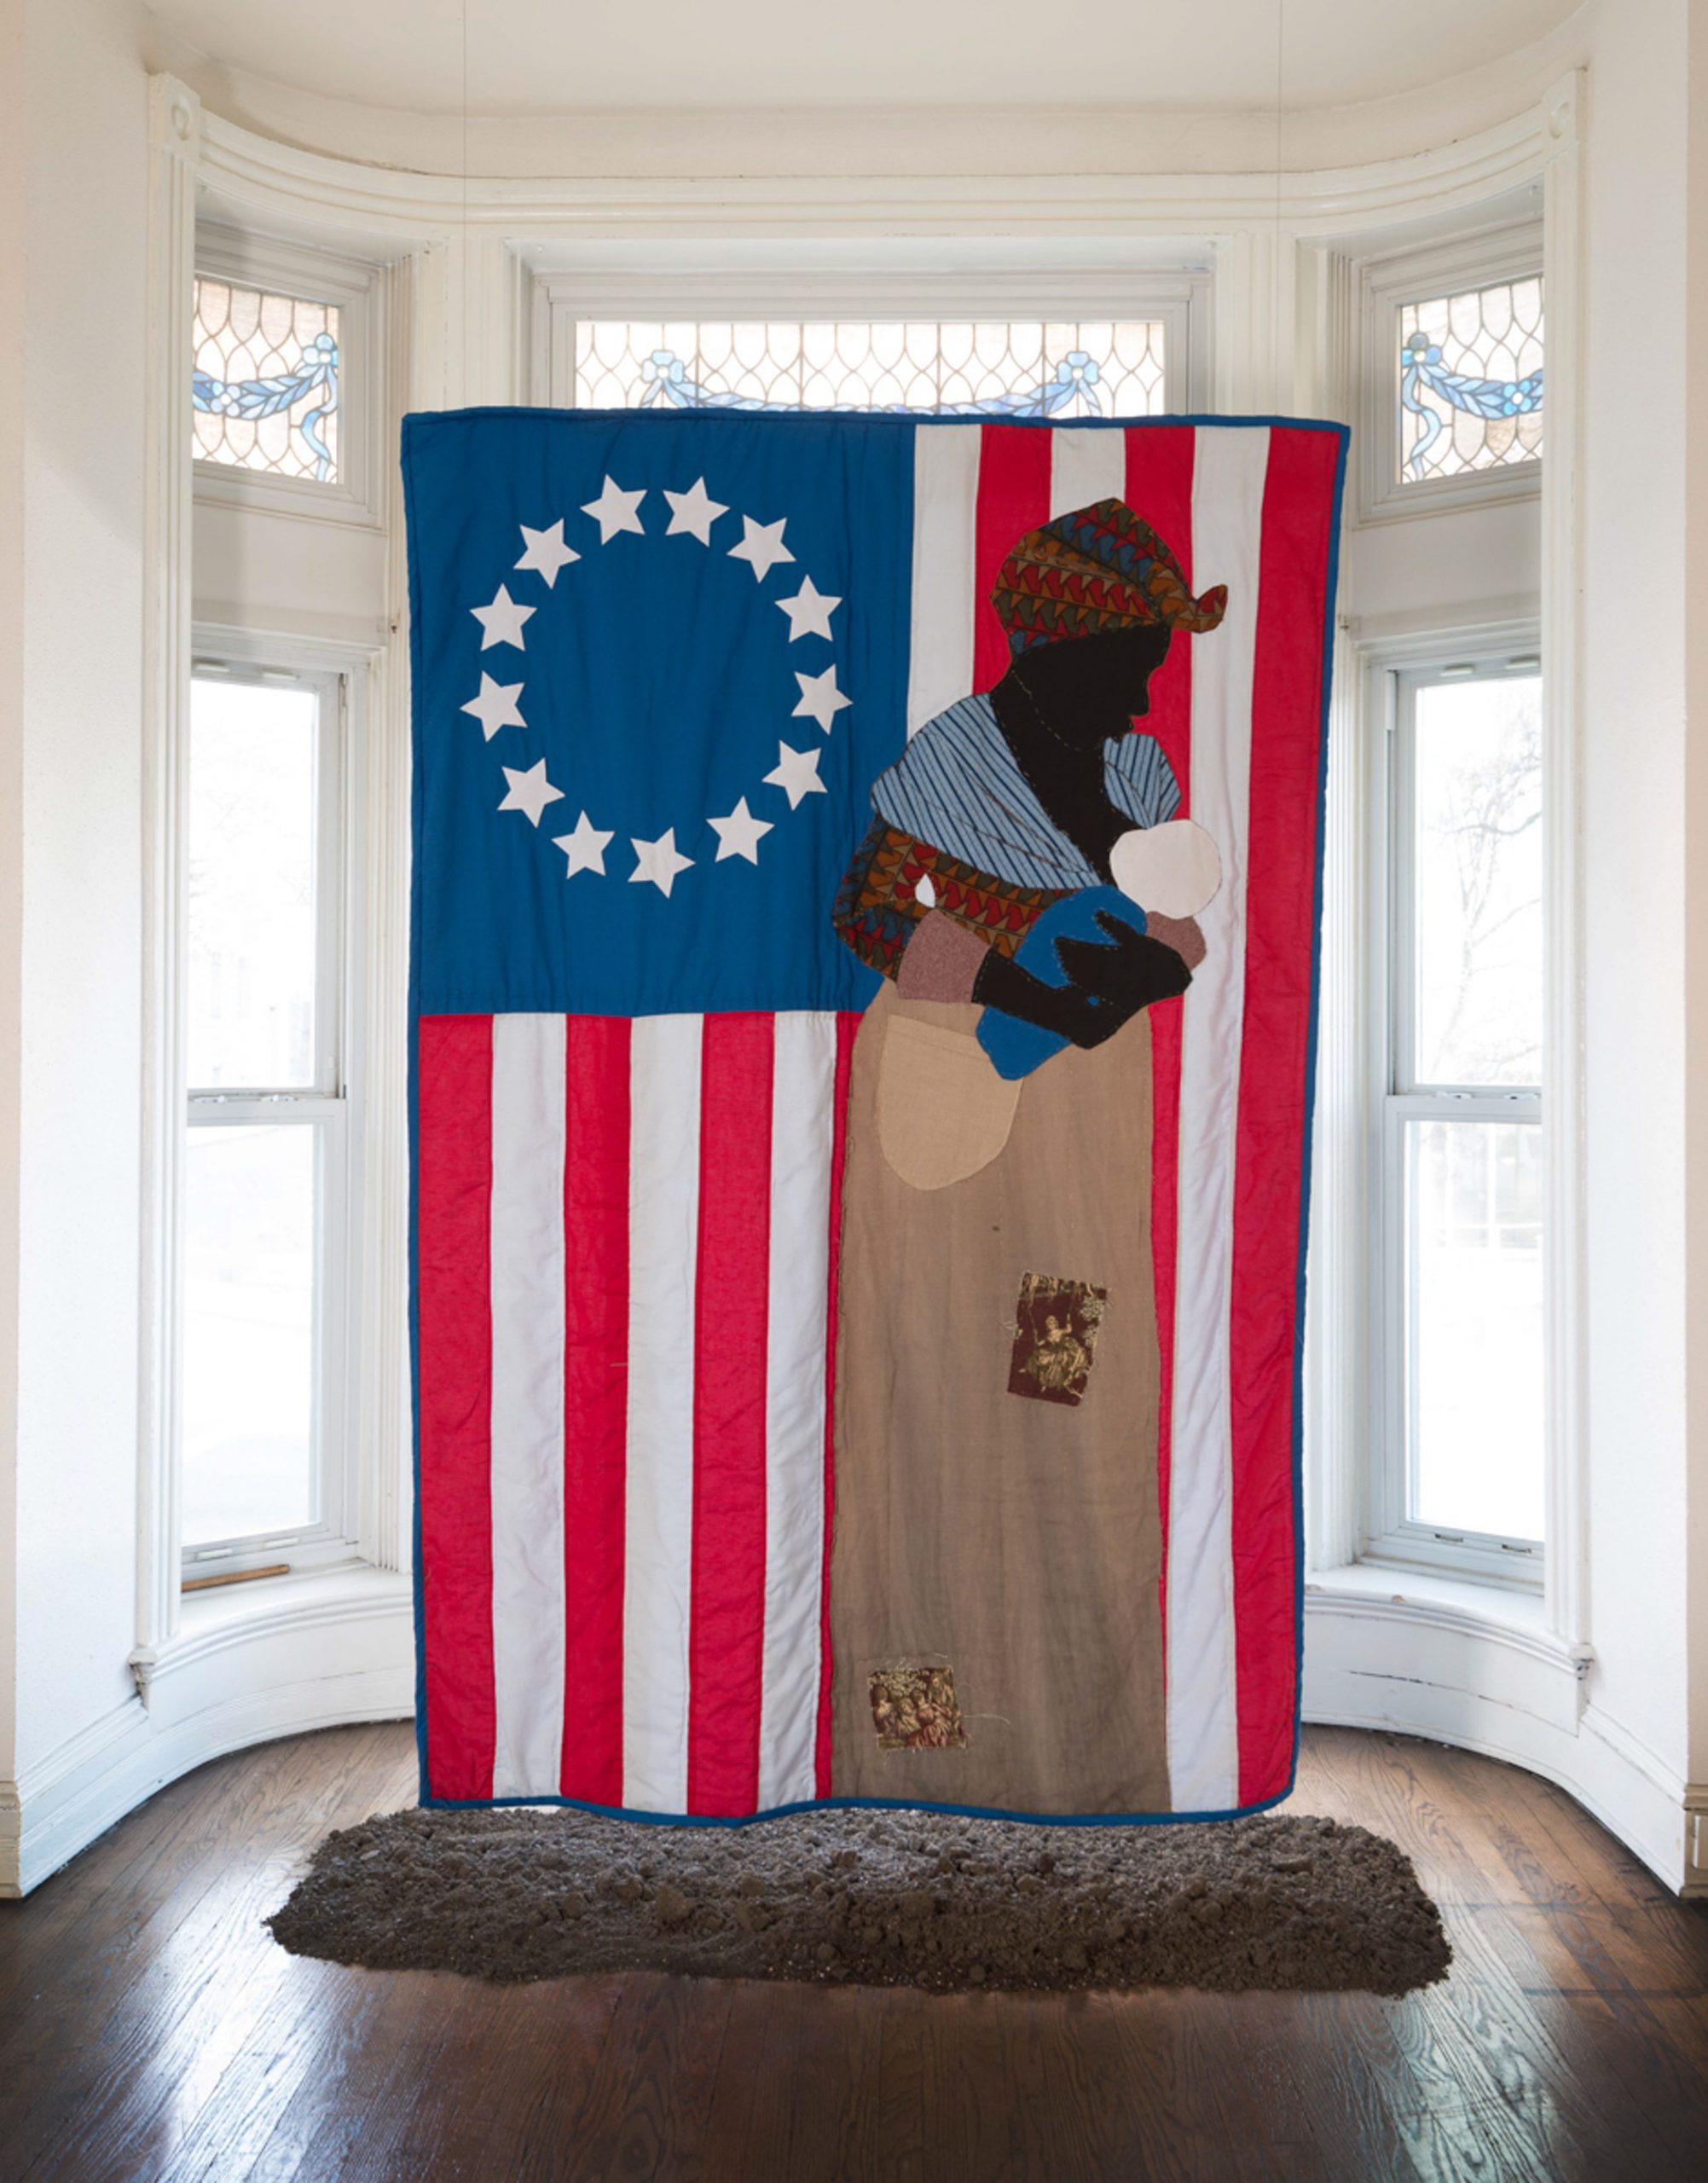 Stephen Towns, Birth of a Nation, 2014. Natural and synthetic fabric, polyester and cotton thread, metallic thread, coffee and tea stain, acrylic paint. 90 x 66 inches. Private collection.